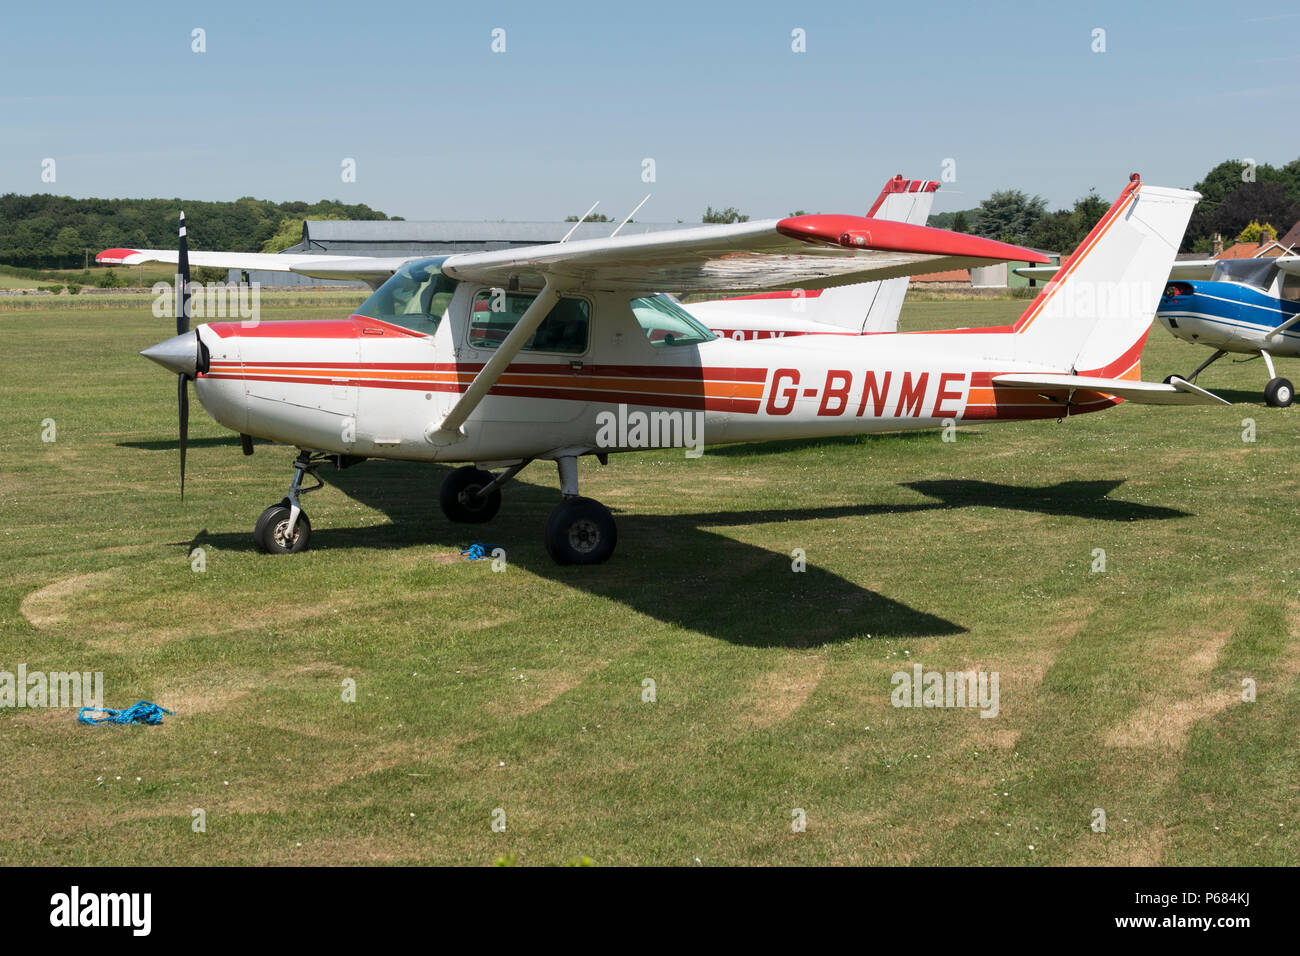 Cessna 152 G-BNME on the ground at Netherthorpe  airfield, Sheffield Aero Club - Stock Image